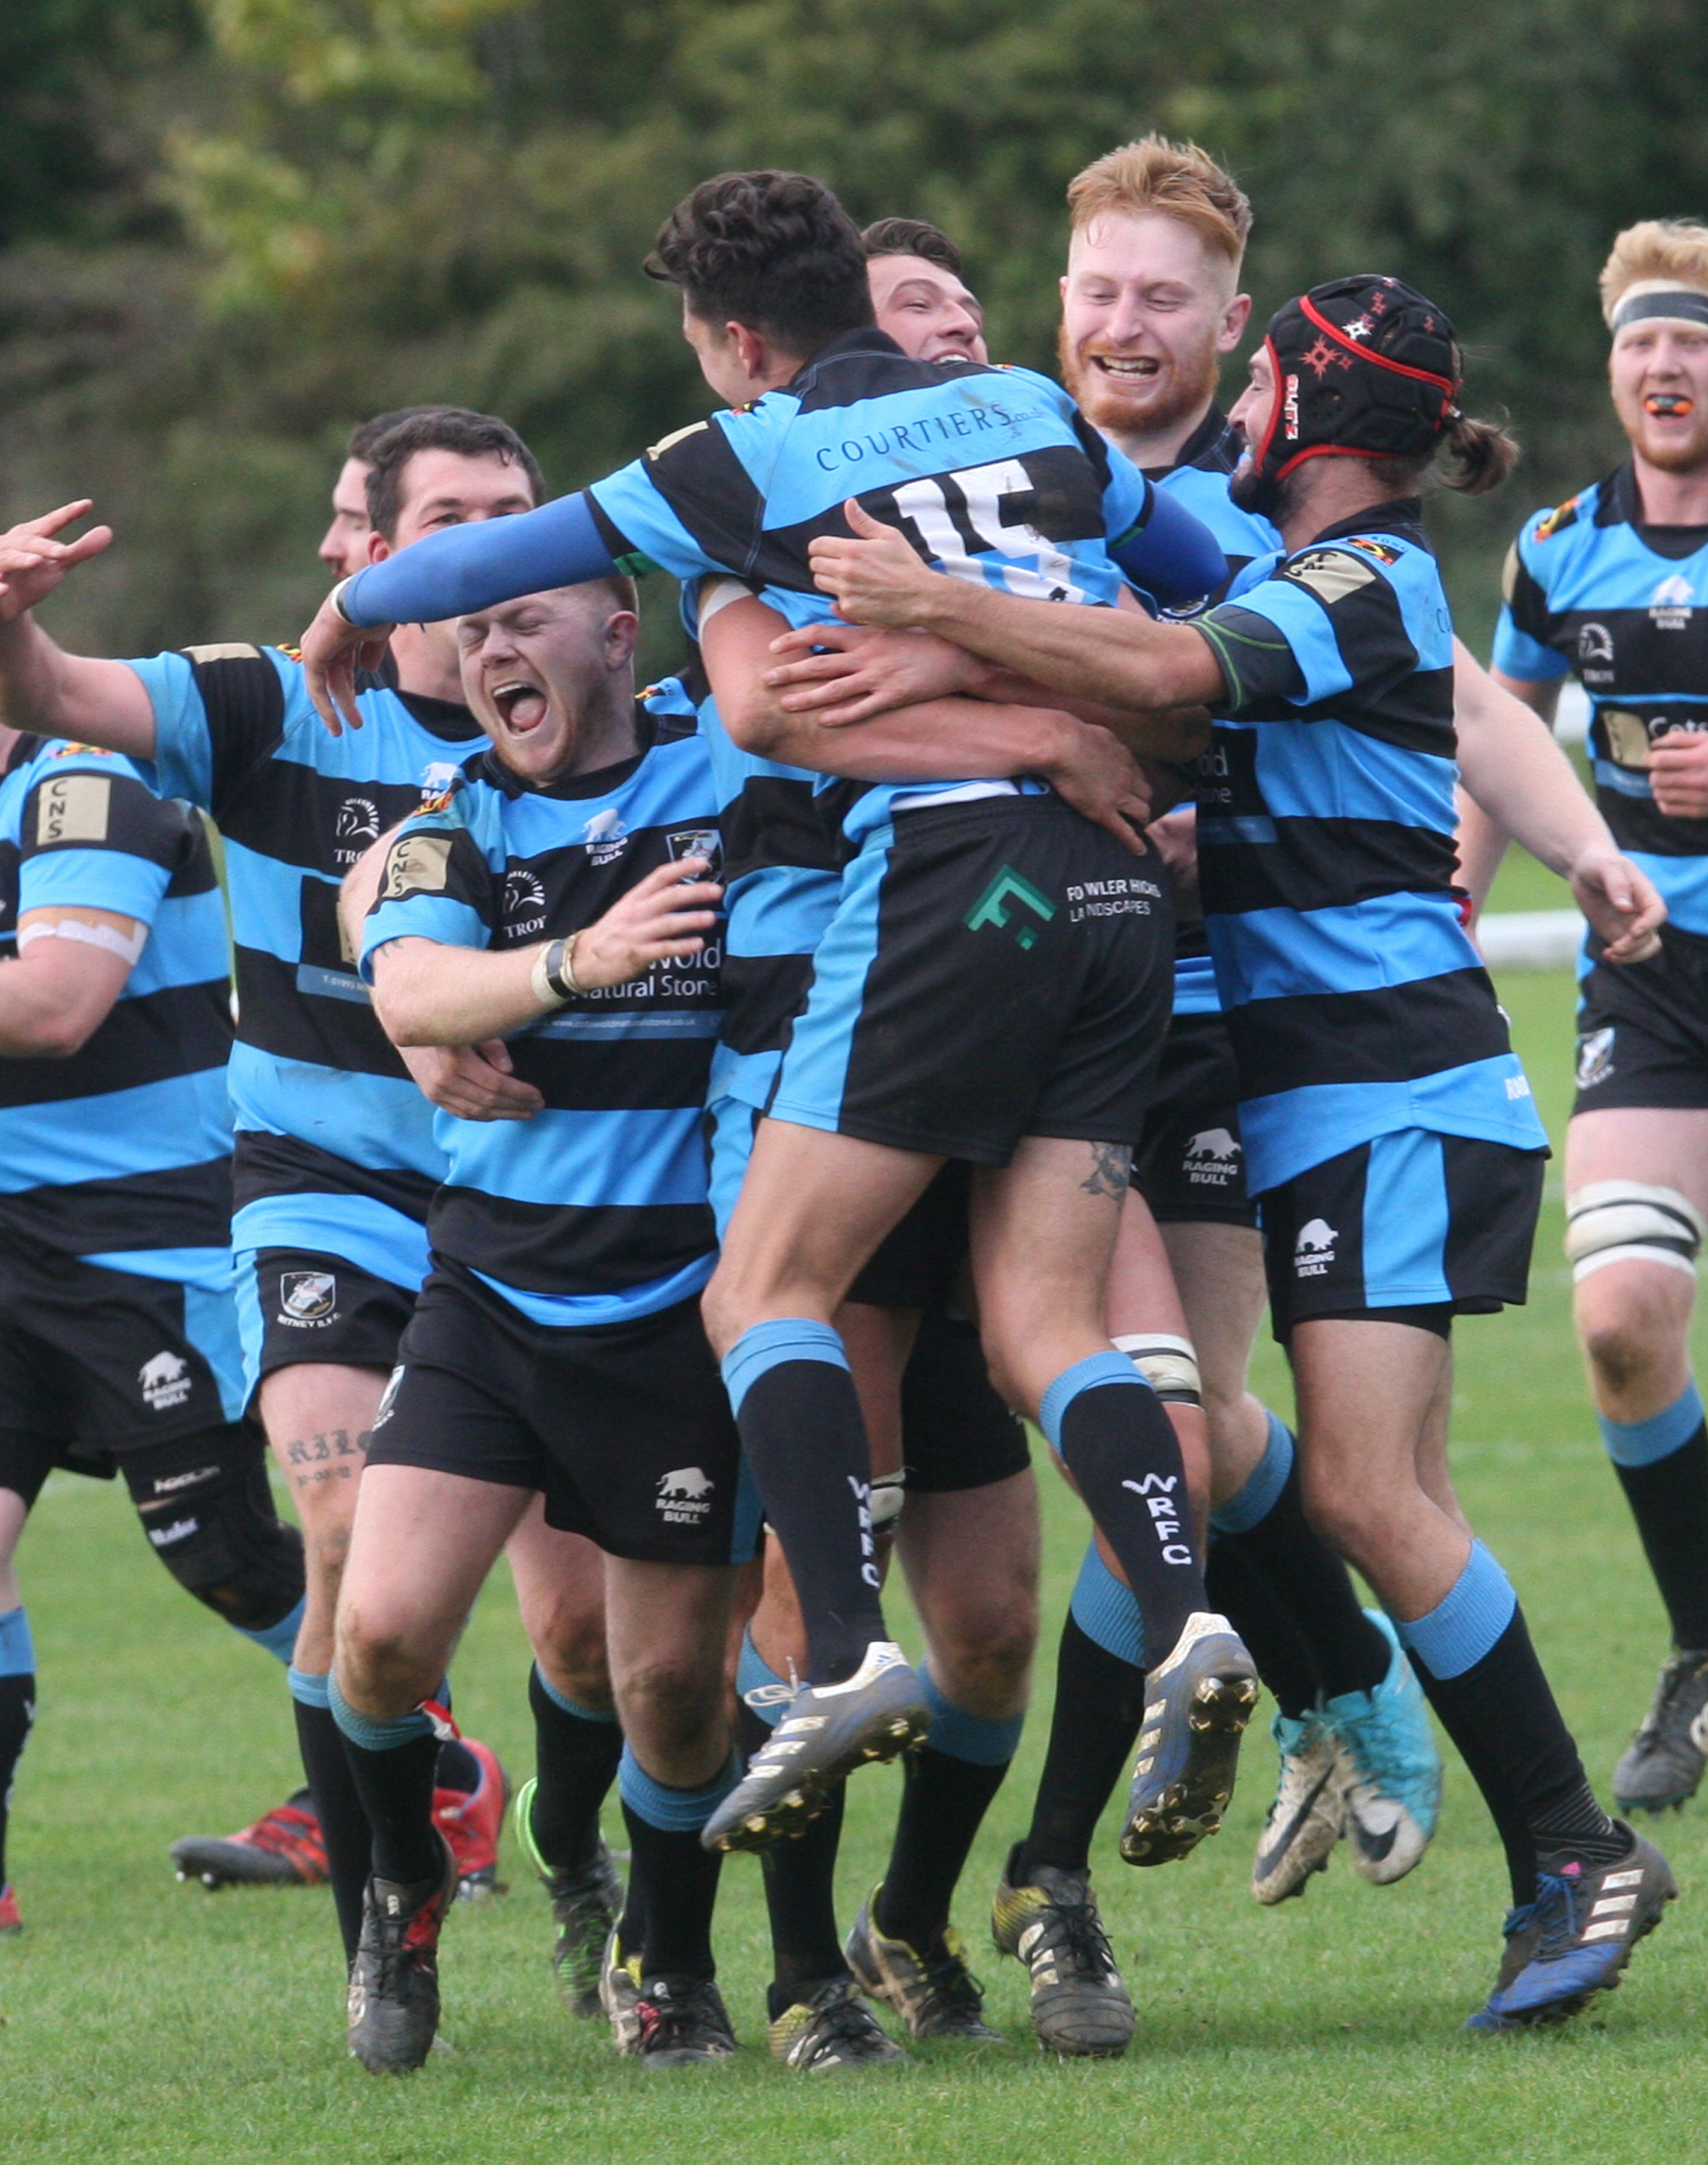 ELATION: Witney's players embrace Arron Lambourne (15) after the full back converted Jack Birks's last-gasp try to earn his side a 27-26 victory over Salisbury in South West 1 East Picture: Steve Wheeler